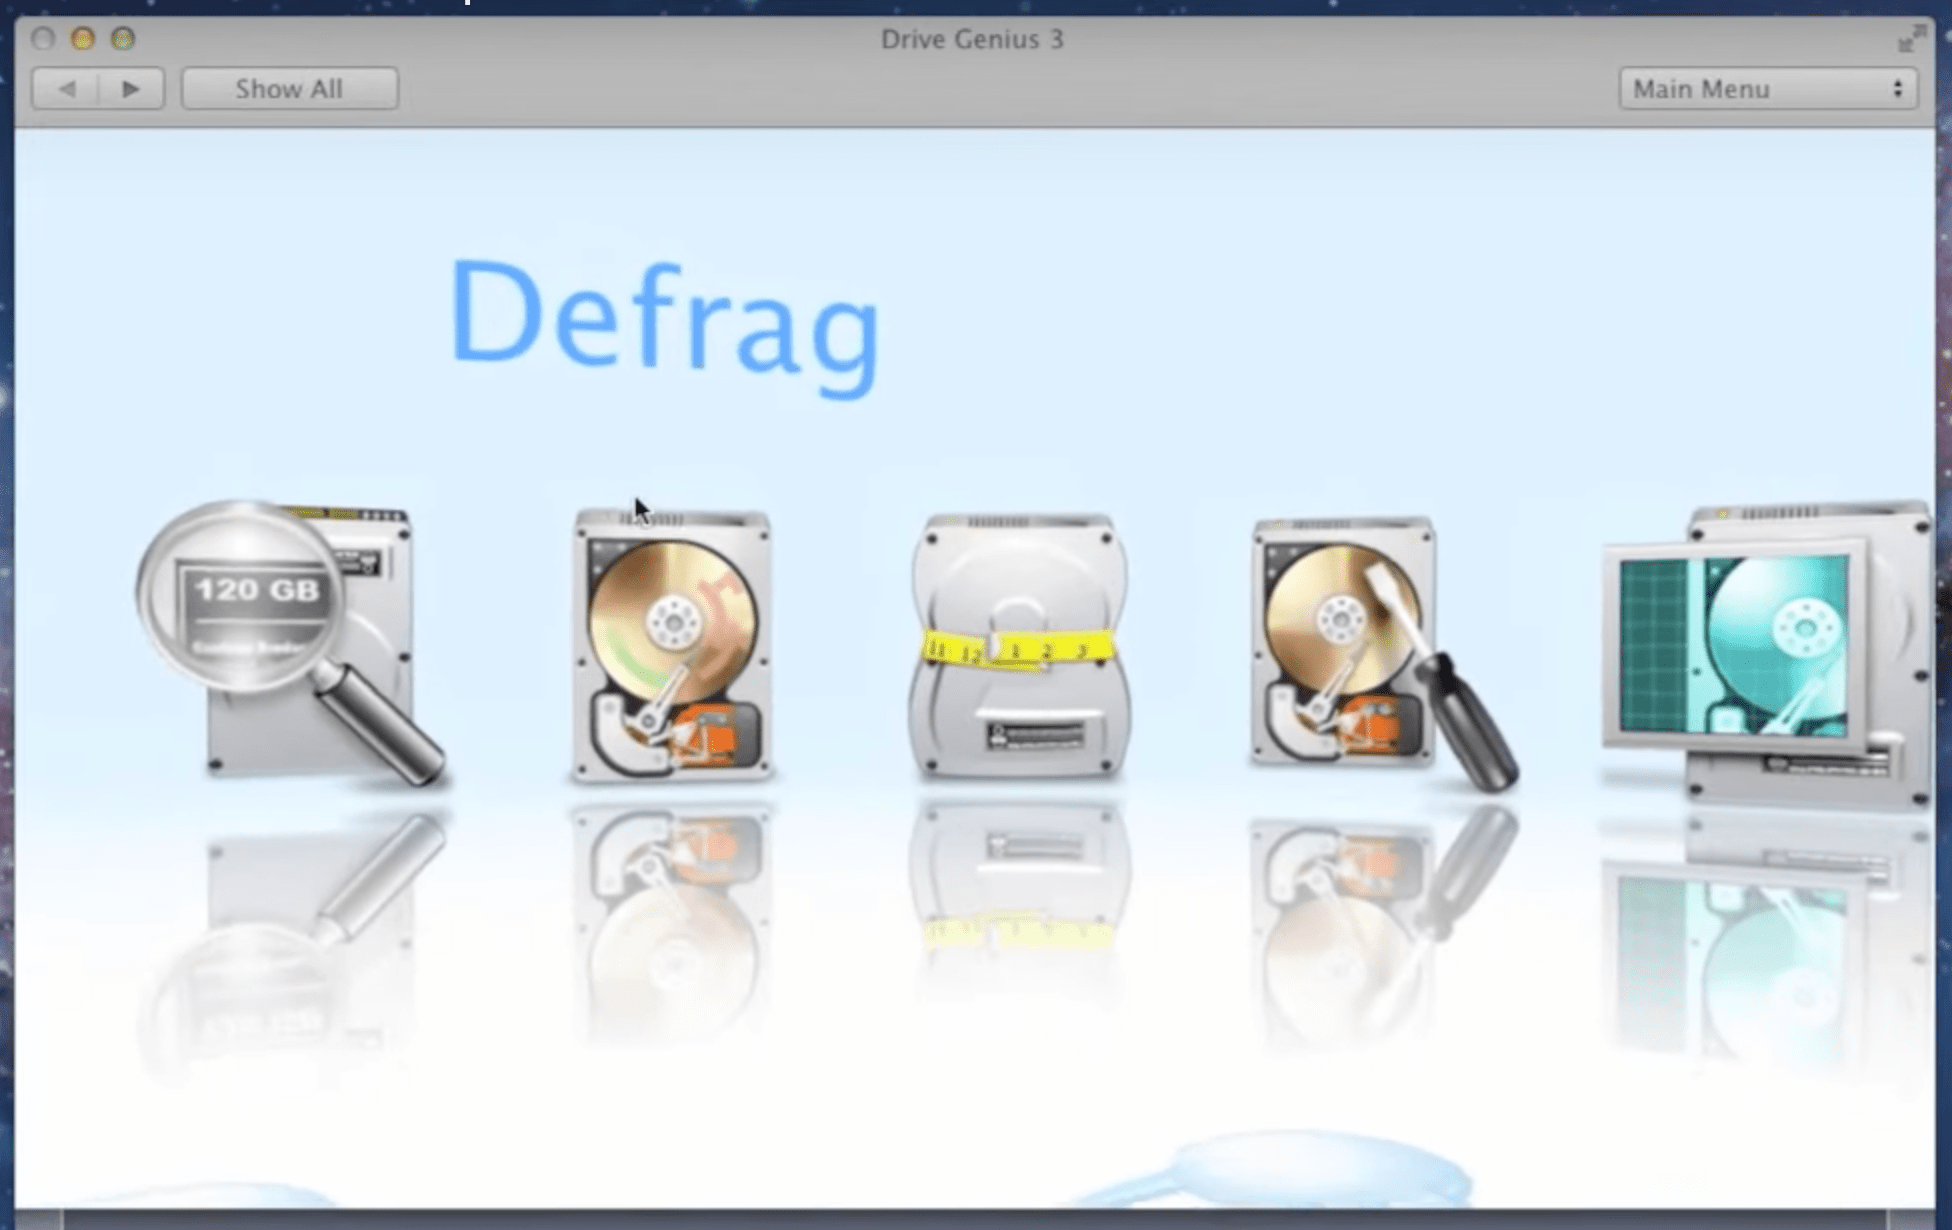 Fragmented and defragmented disks